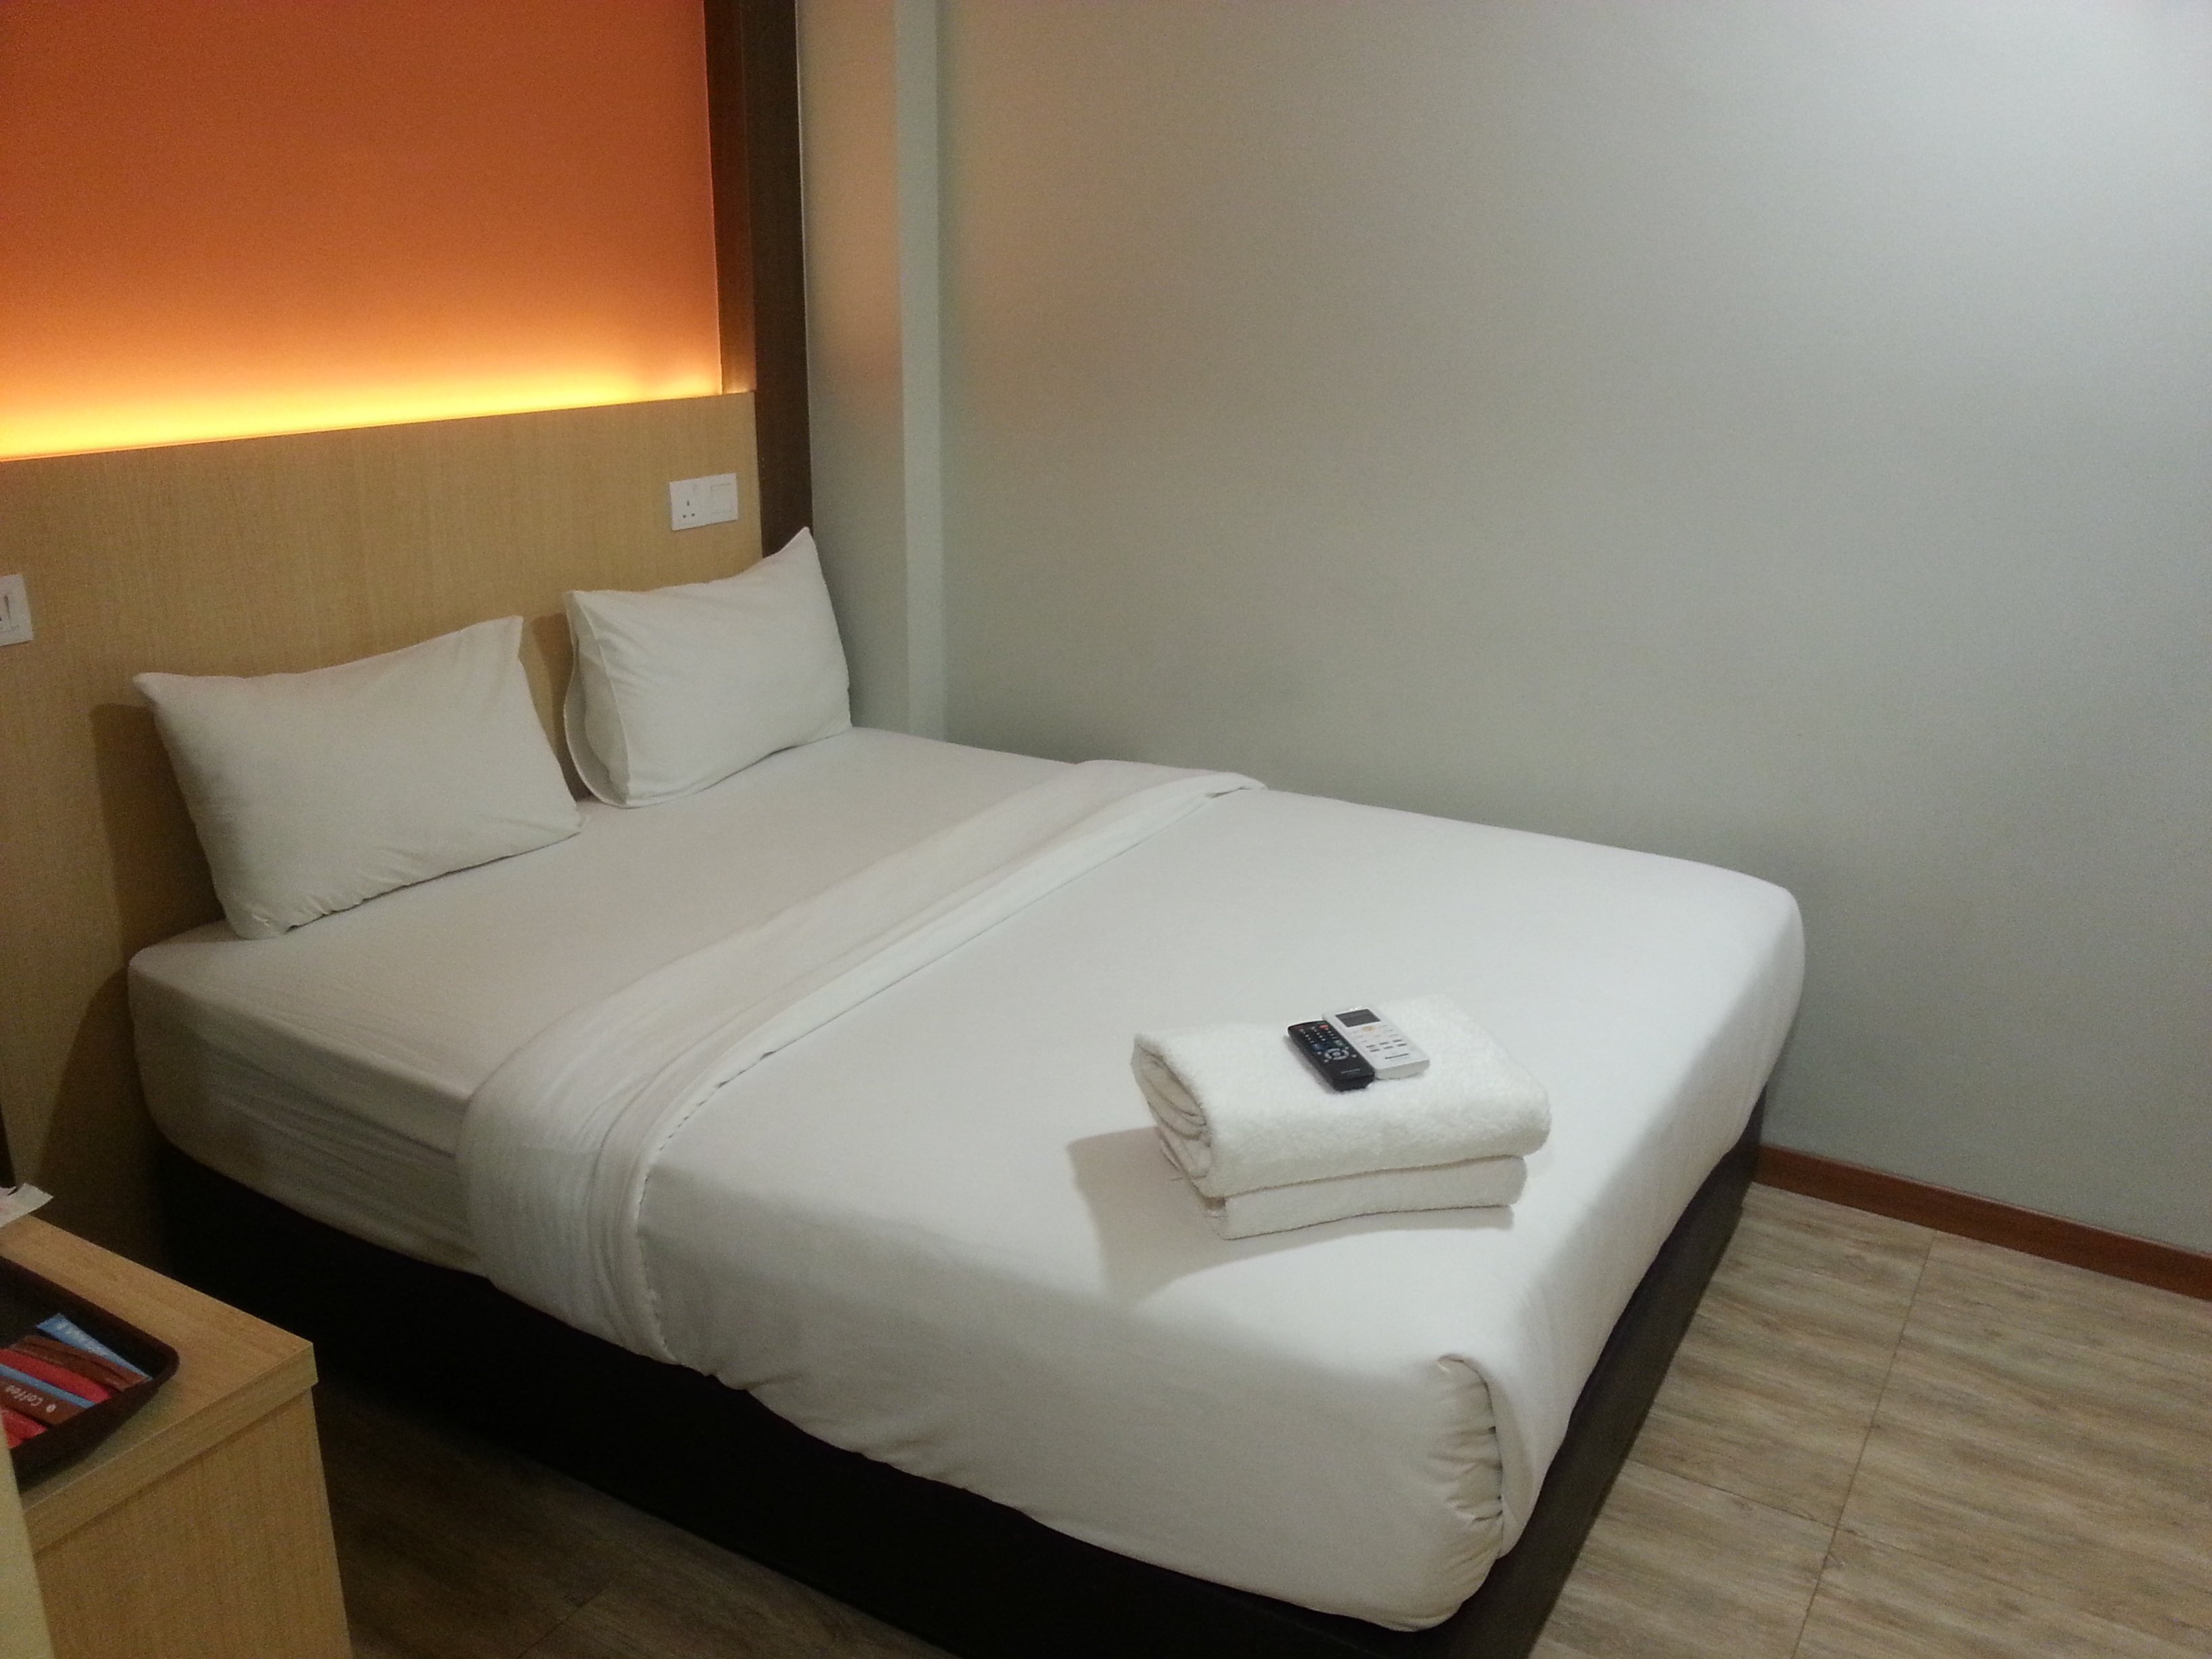 Bed at City Central Hotel KL